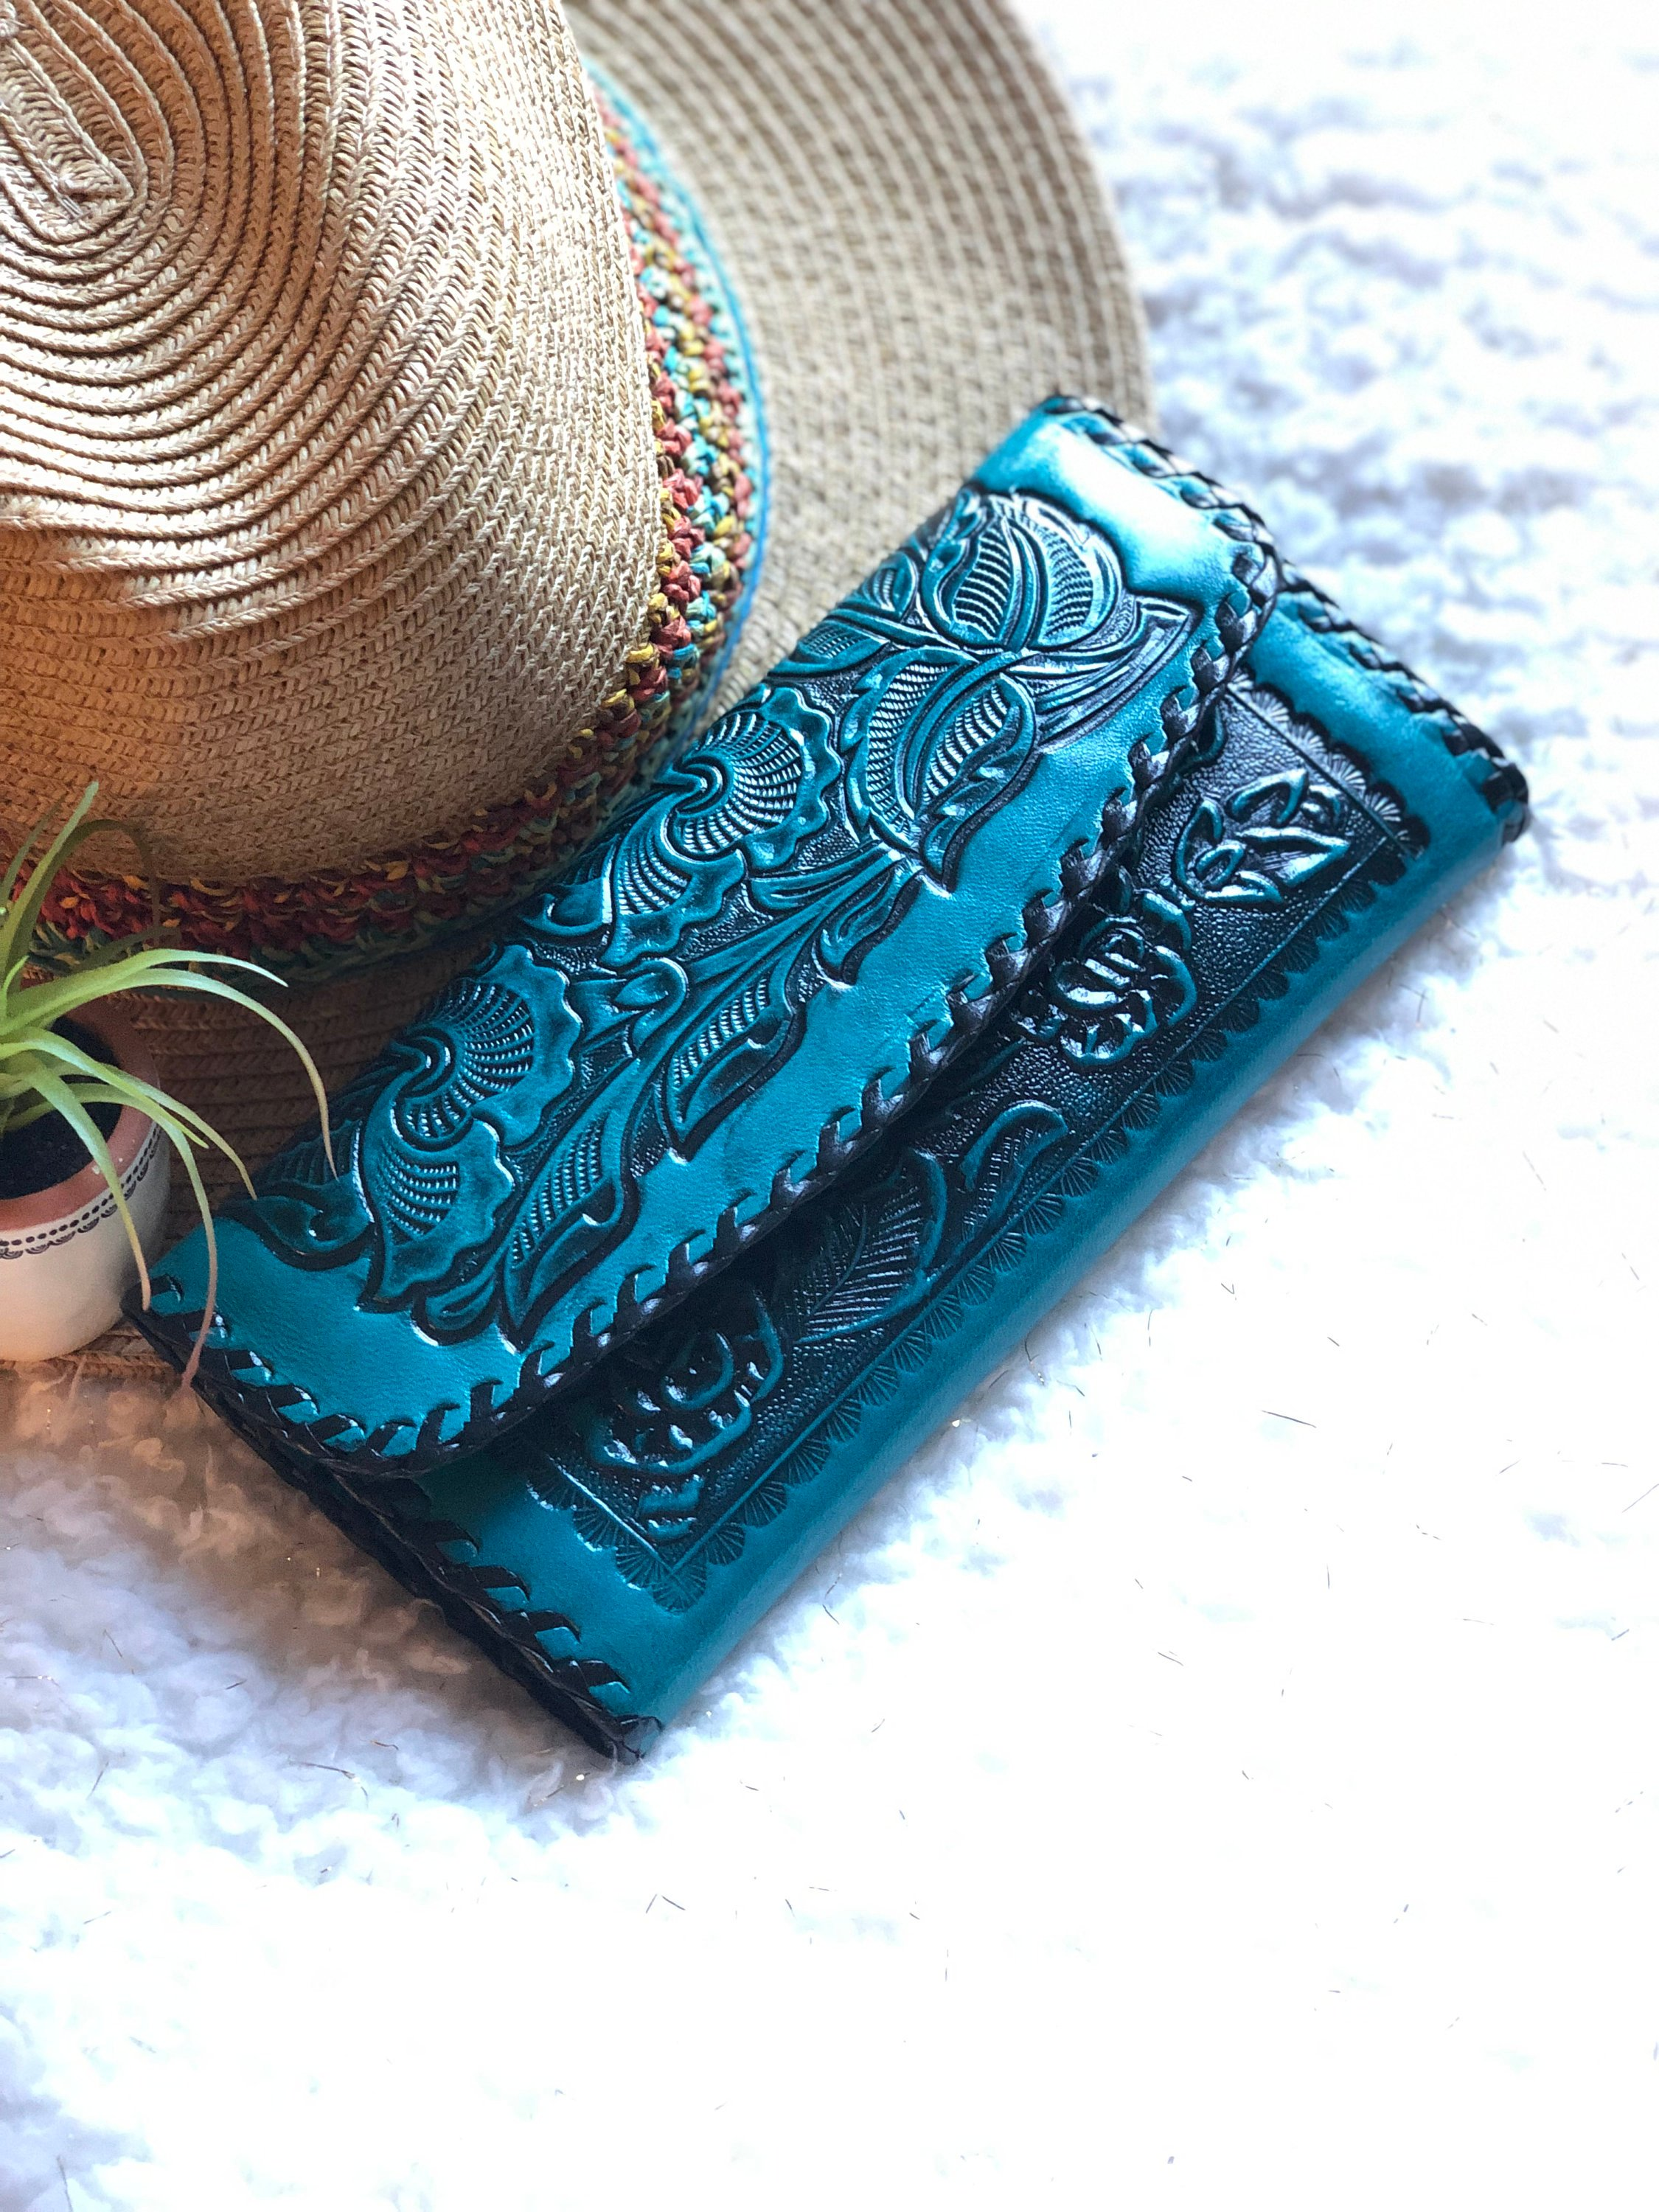 A blue  tooled leather wallet